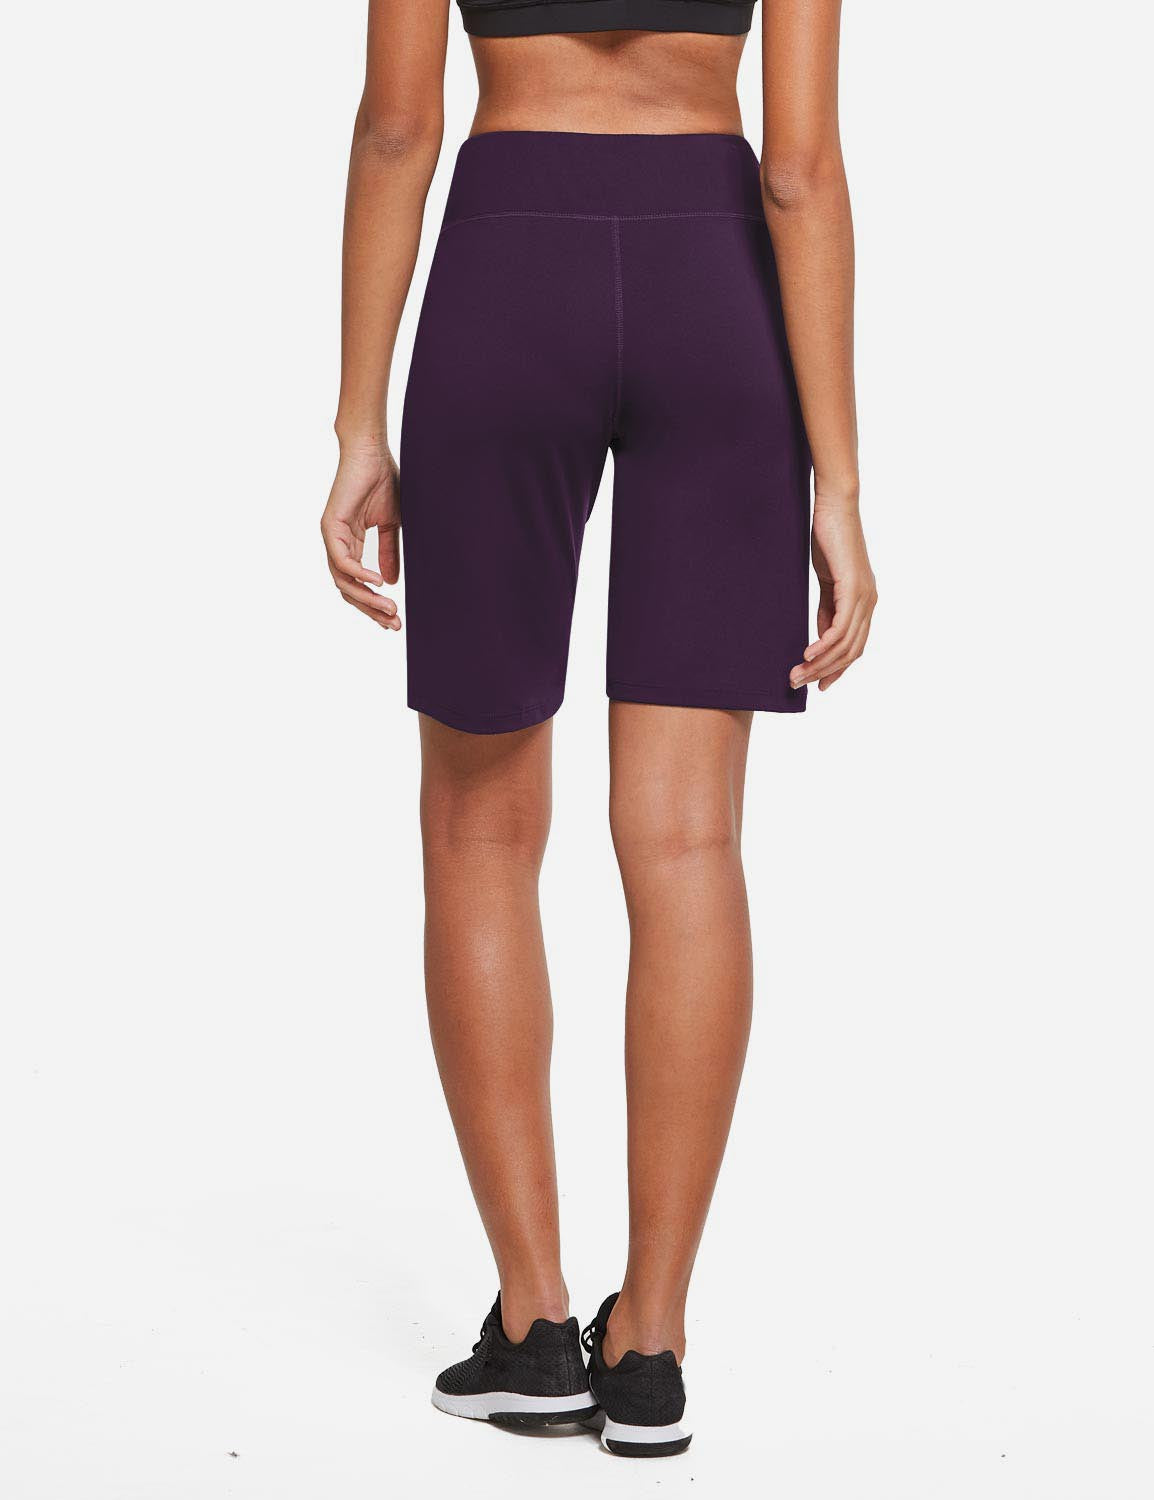 Baleaf Womens Mid Rise Tummy Control Pocketed Lounge Bermuda Shorts Purple Details